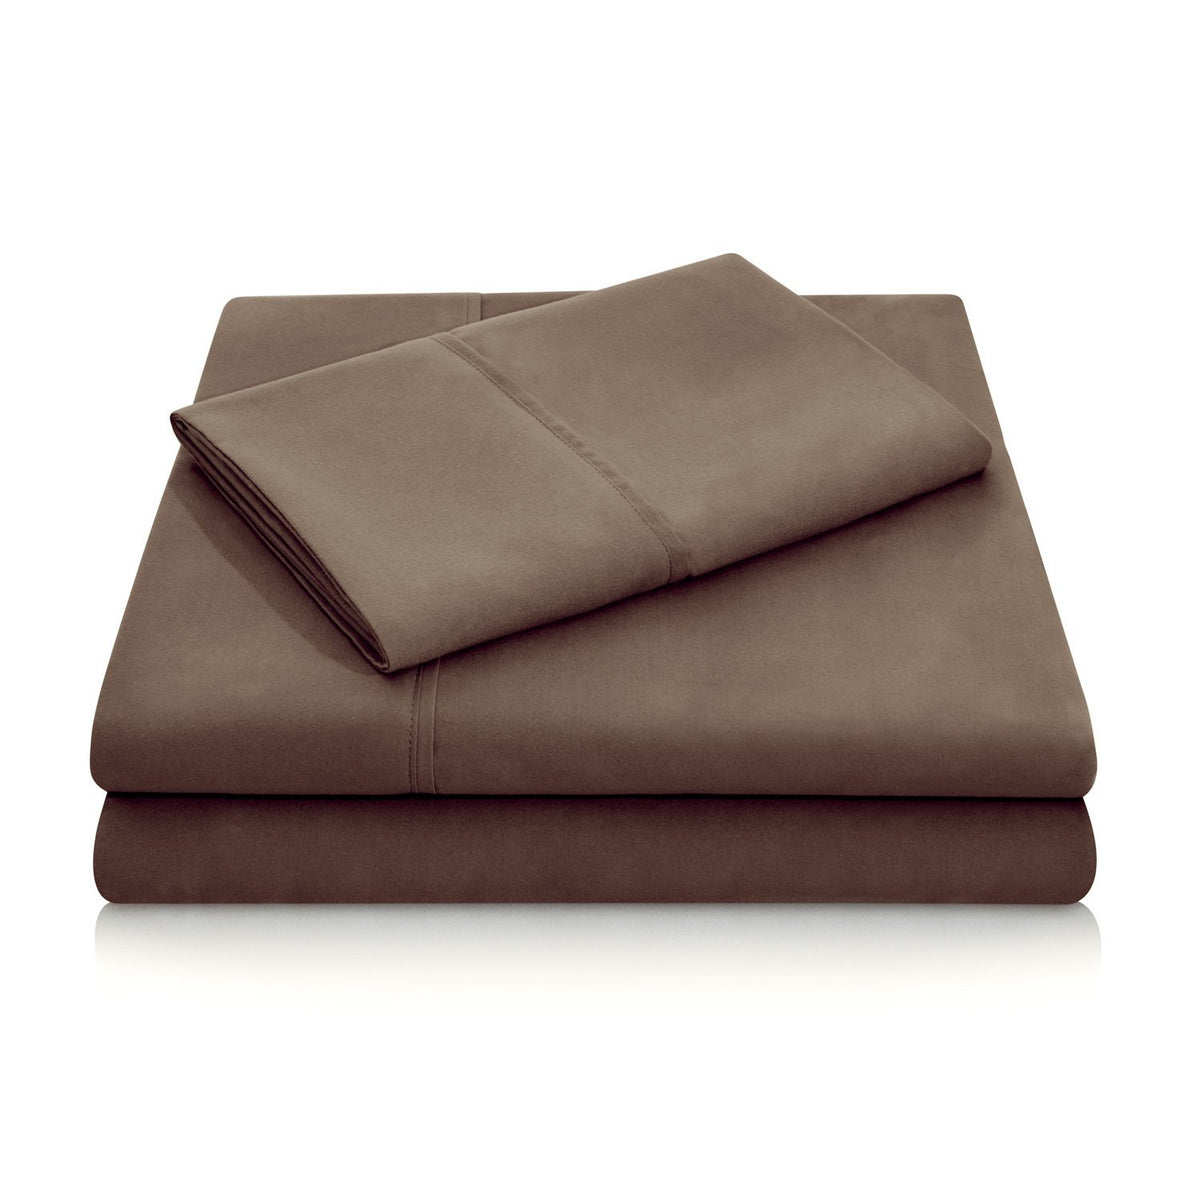 WOVEN Brushed Microfiber Sheet Set Sheet Set Malouf Twin Chocolate